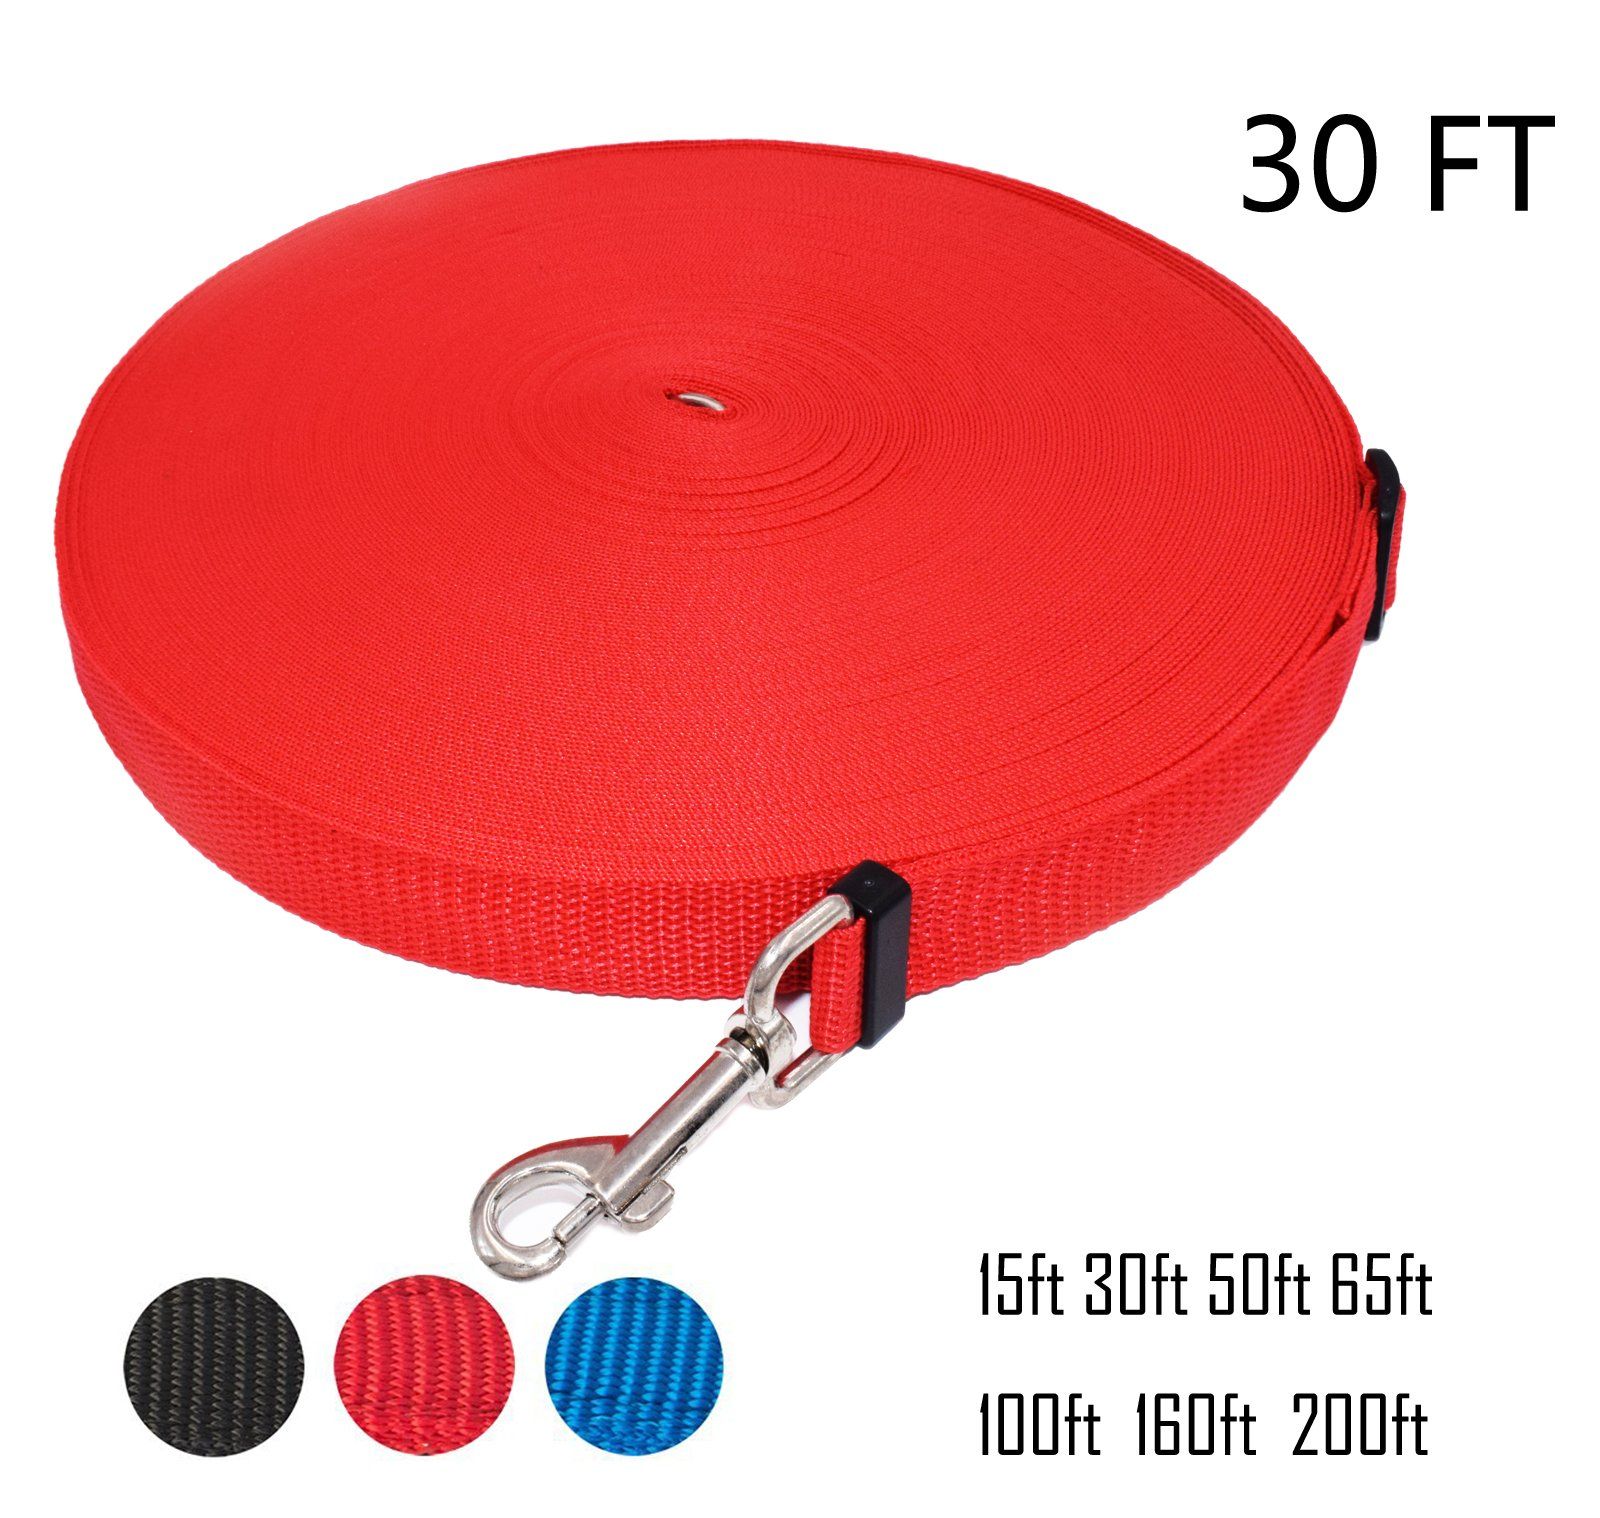 Zhixuanke 1in wide by 15ft 30ft 50ft 100ft 200feet long Nylon Training Leash - For Large,Medium and Small Dogs - Long Lead - Great for Training, Play, Camping, or Backyard (30 FT Red, Red)